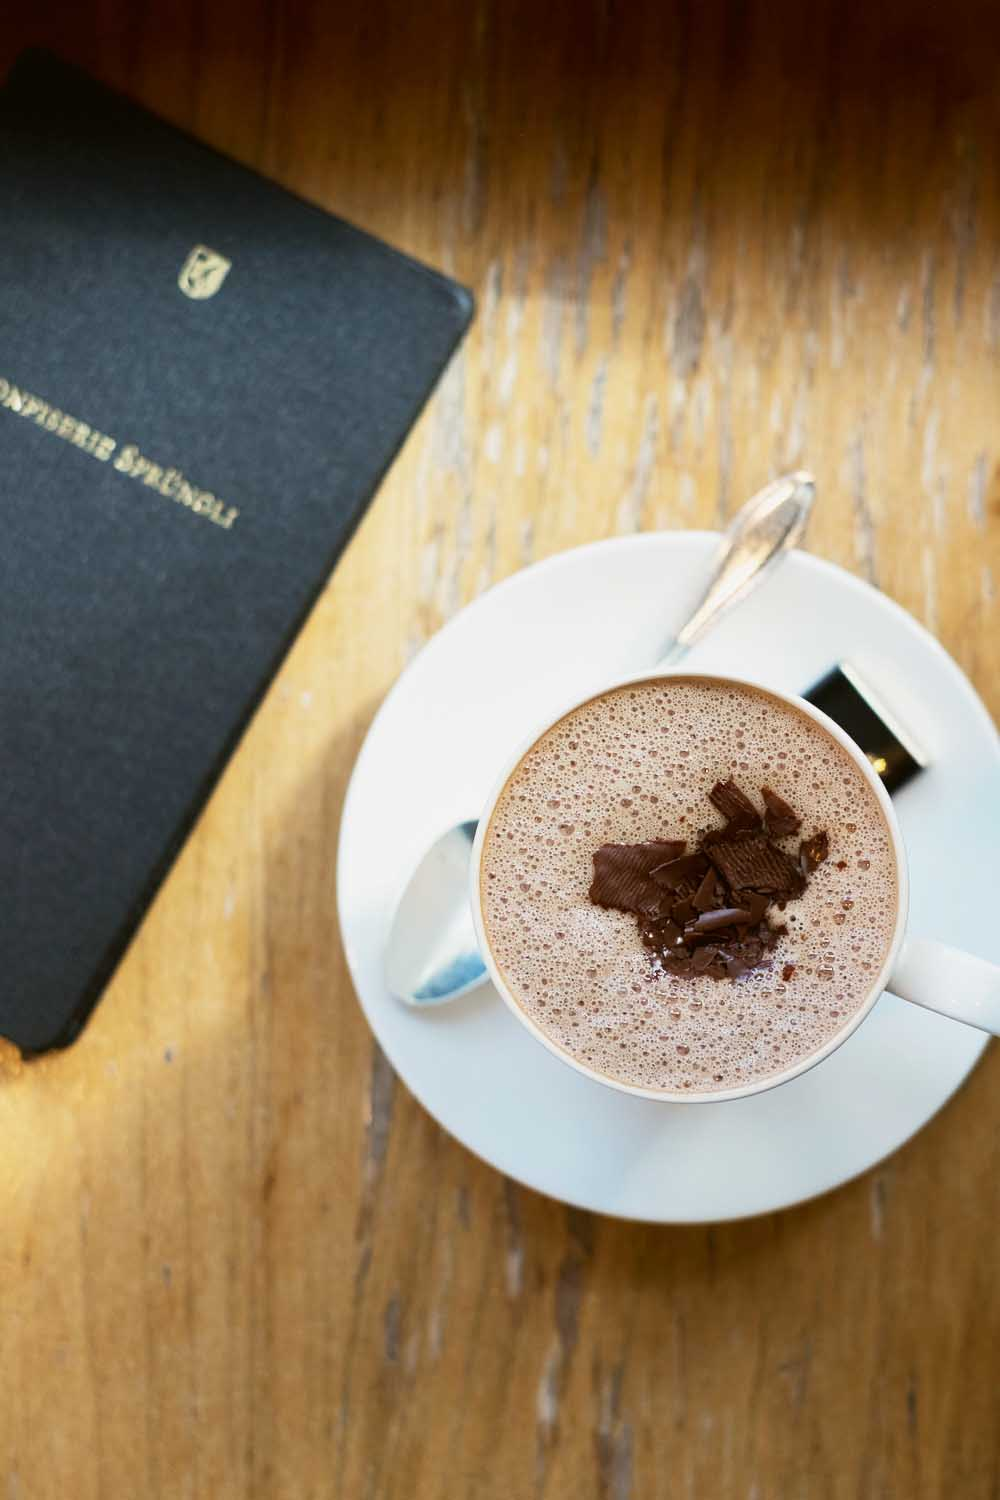 Hot chocolate at Confiserie Sprüngli in Zurich, Switzerland